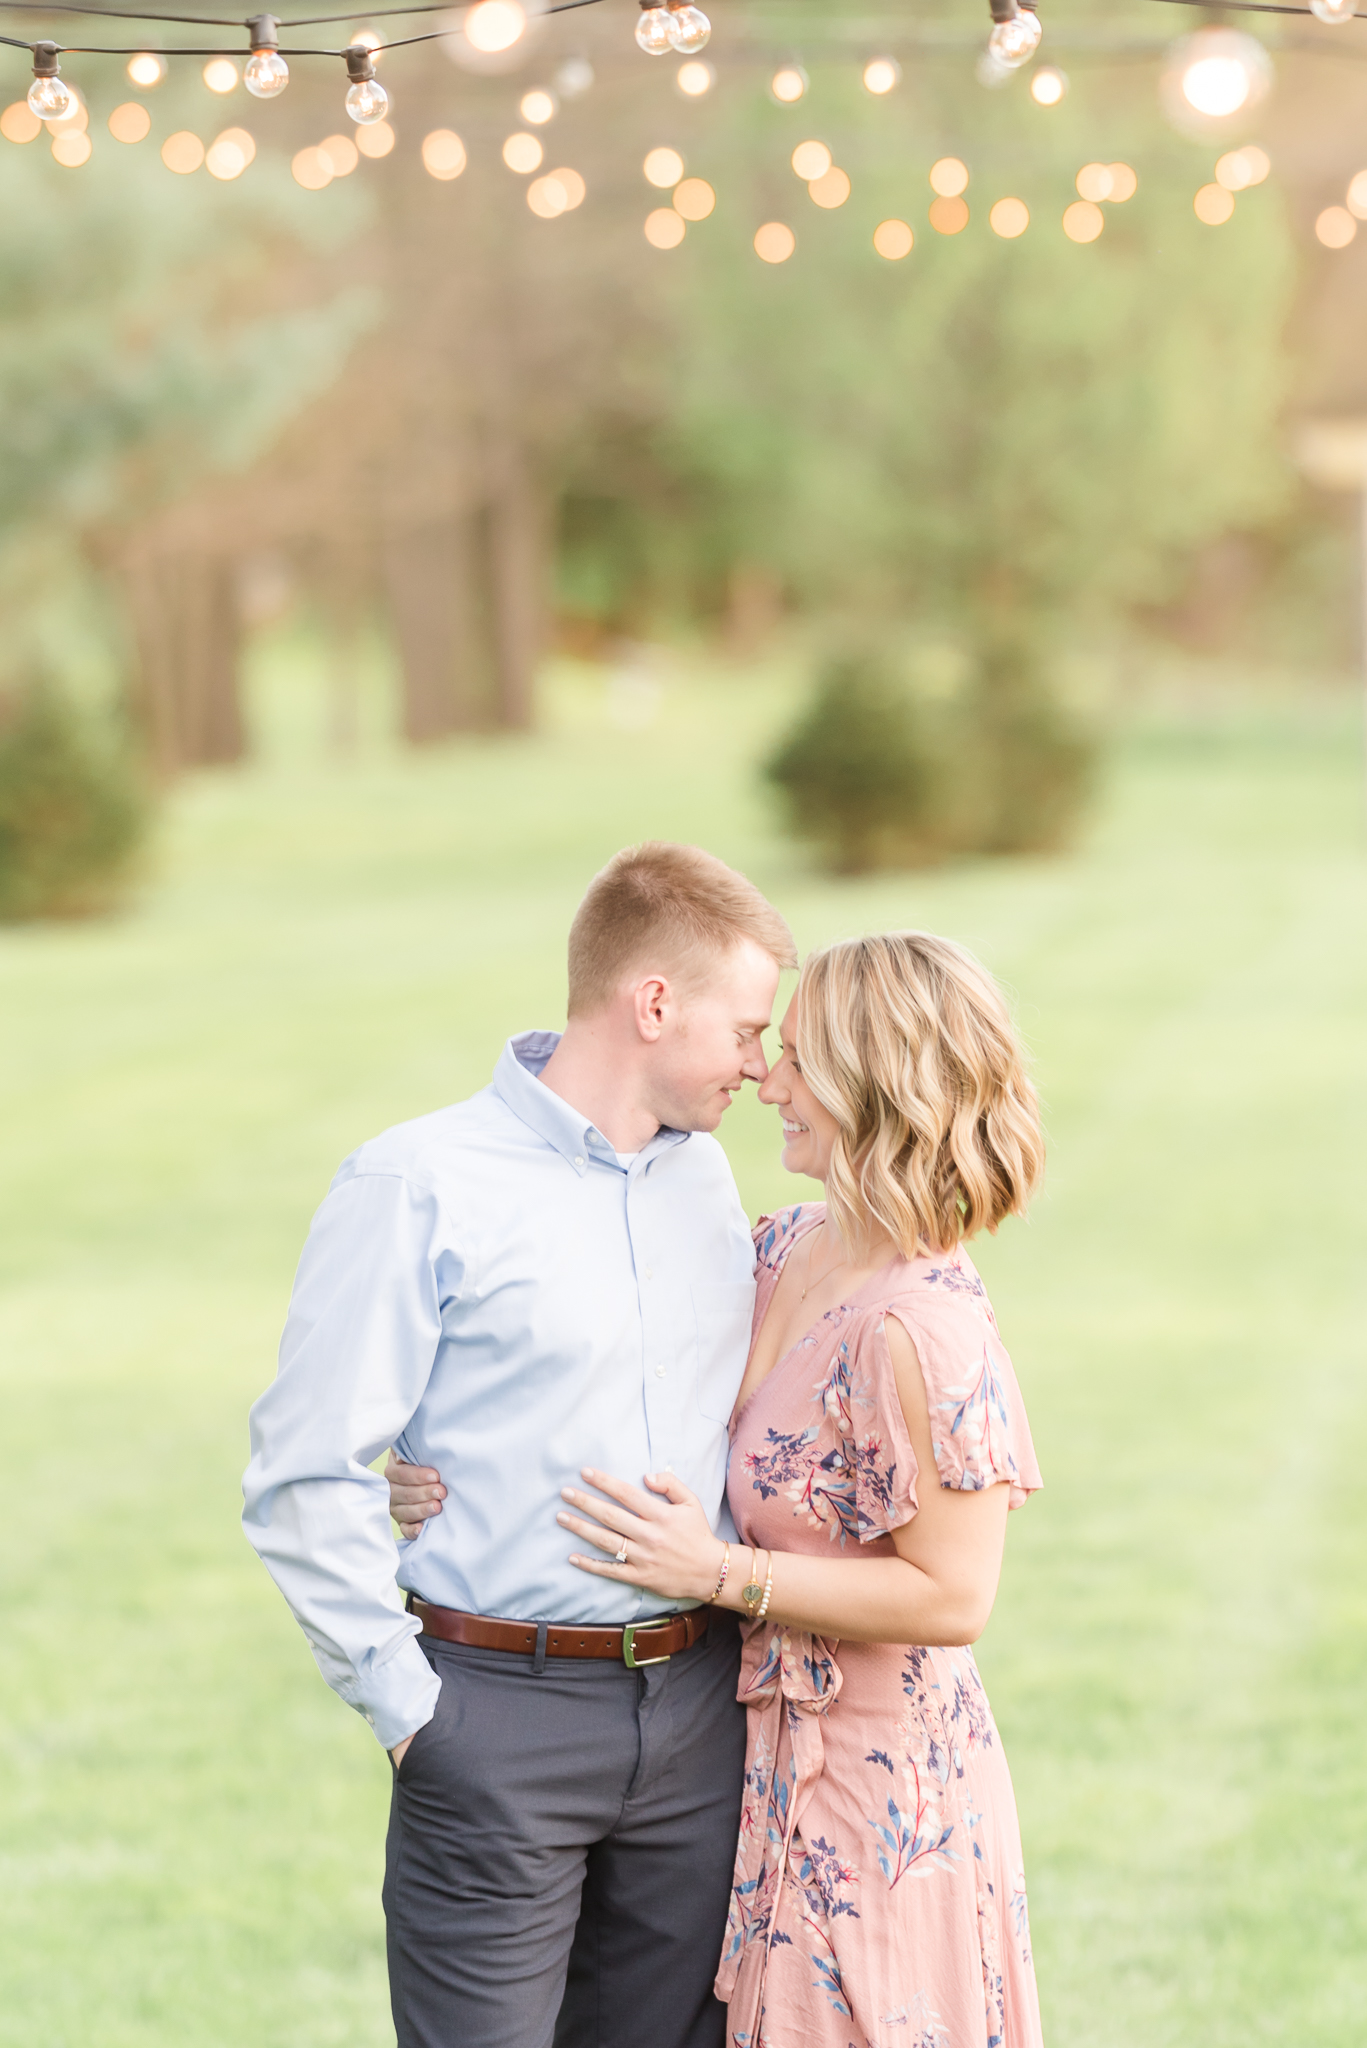 Richie Woods Nature Preserve and Mustard Seed Gardens Engagement Session Wedding Photos-34.jpg